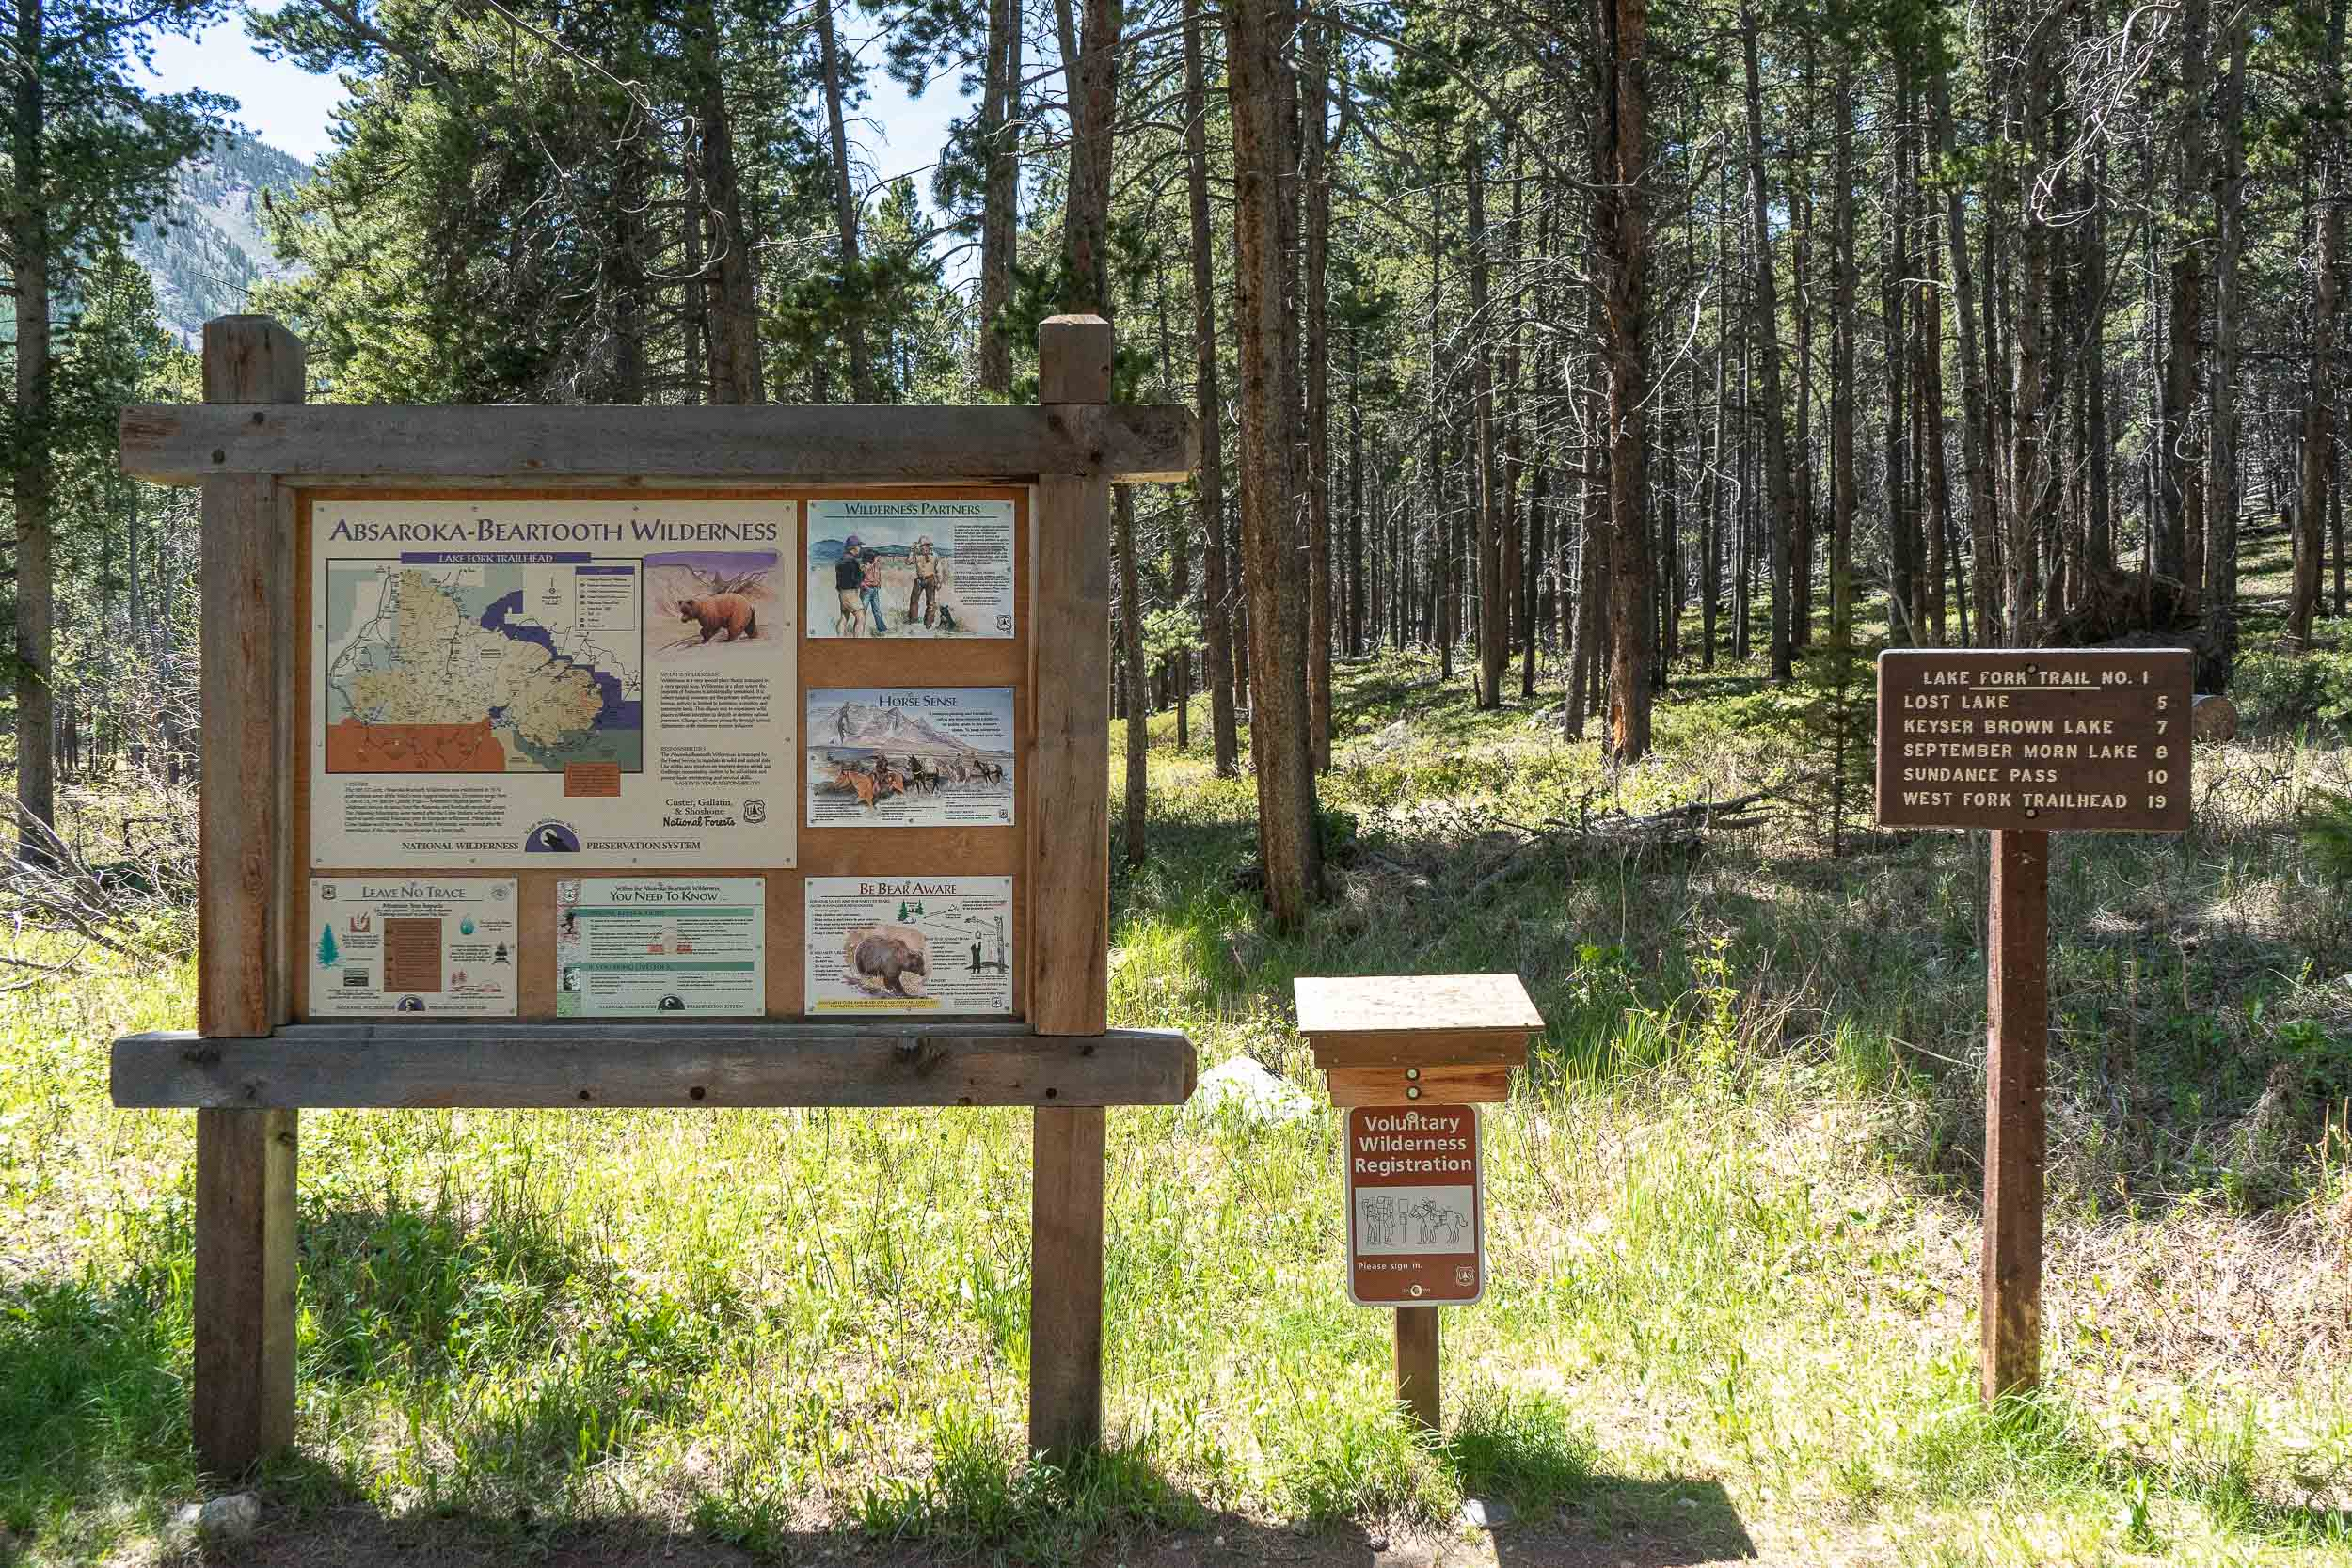 Lake Fork Trail; 9.8 miles near Red Lodge Montana. Easy hike along the river, great for the whole family.